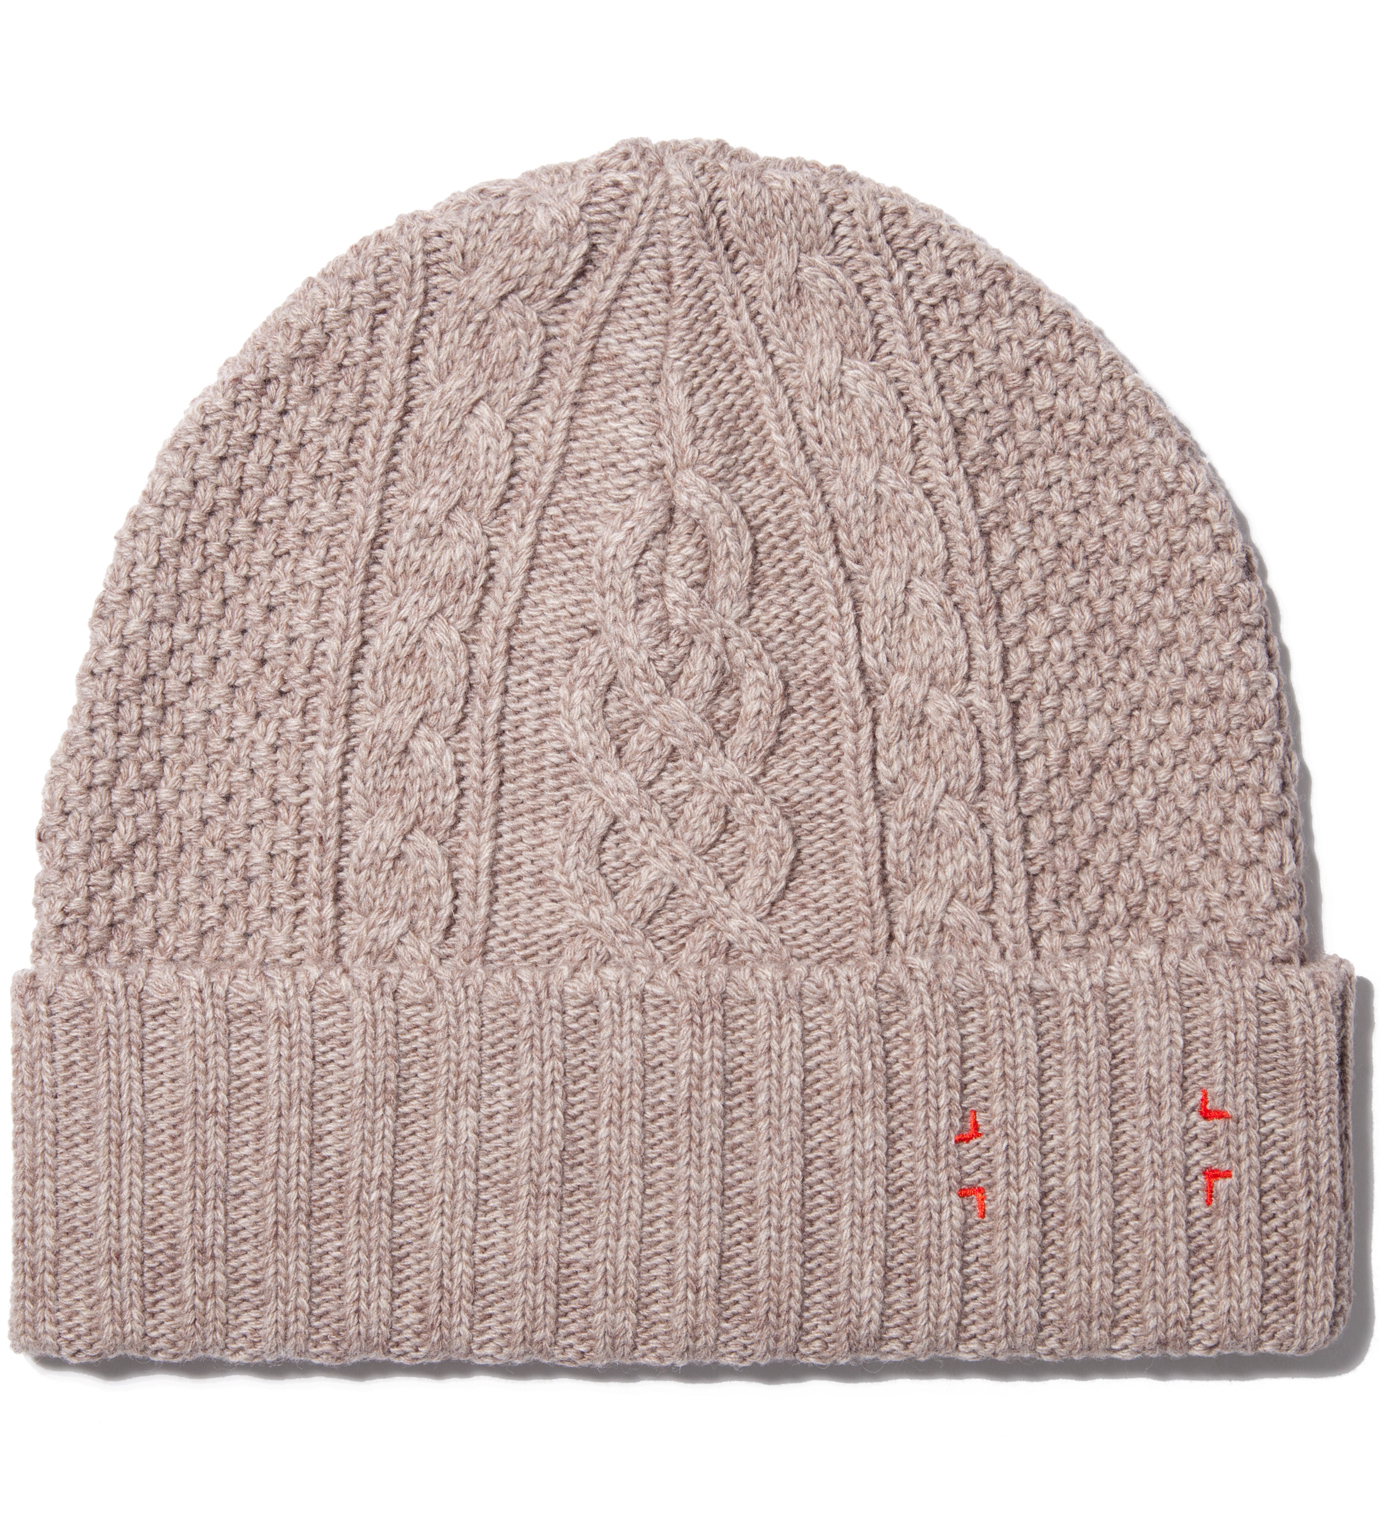 CASH CA Beige Knit Cap